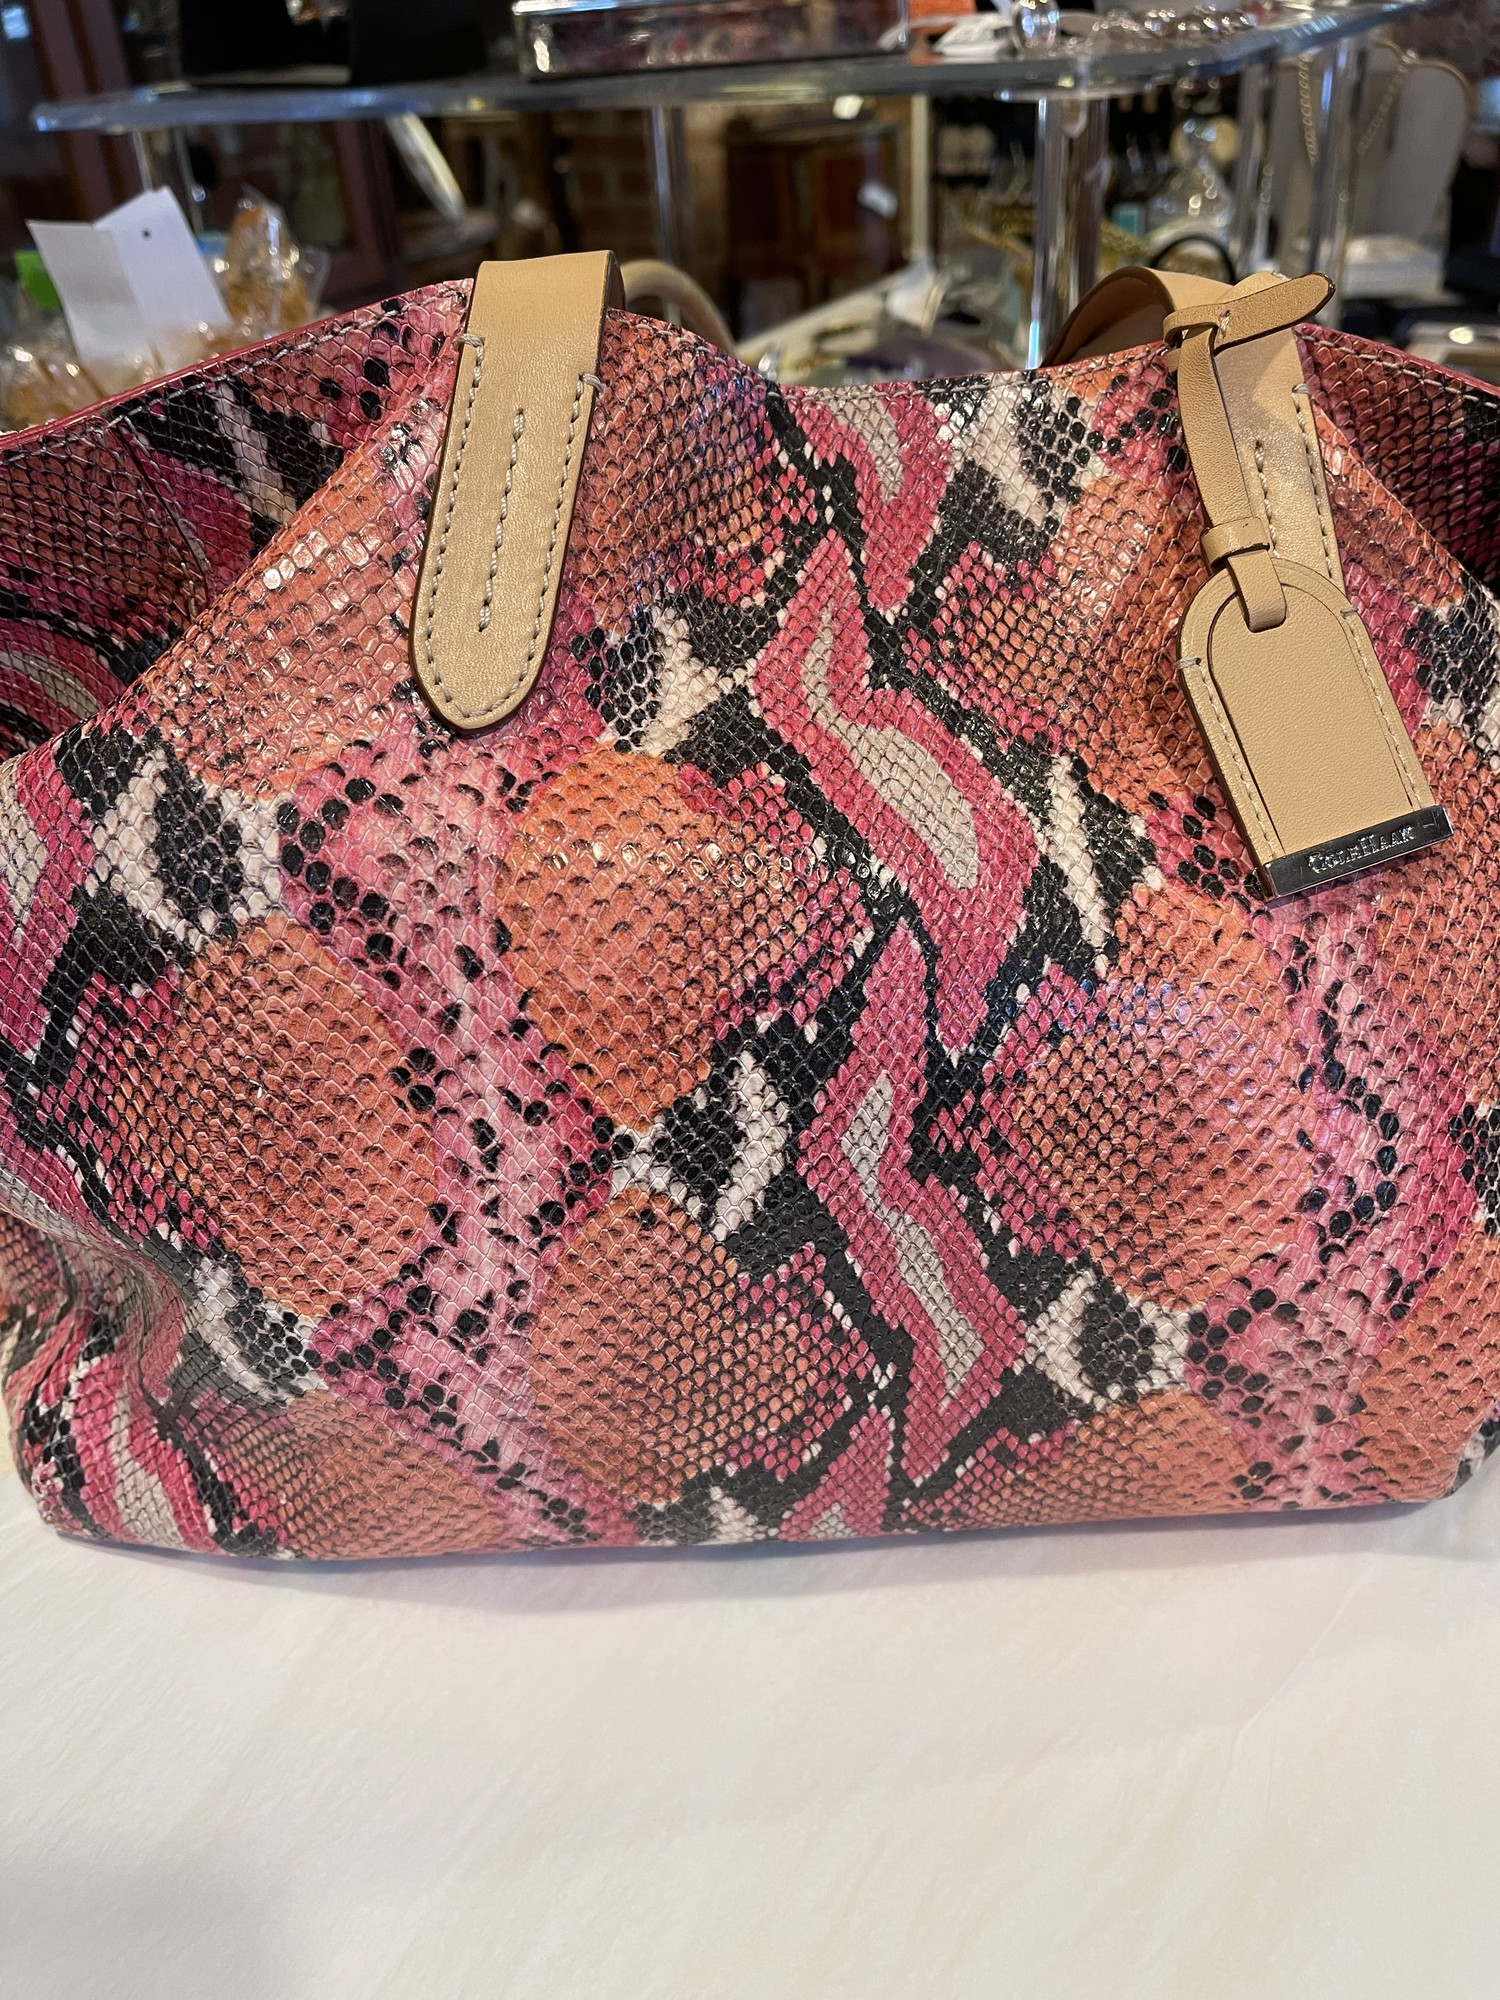 Colehaan Faux Snake, Any, Size: Any